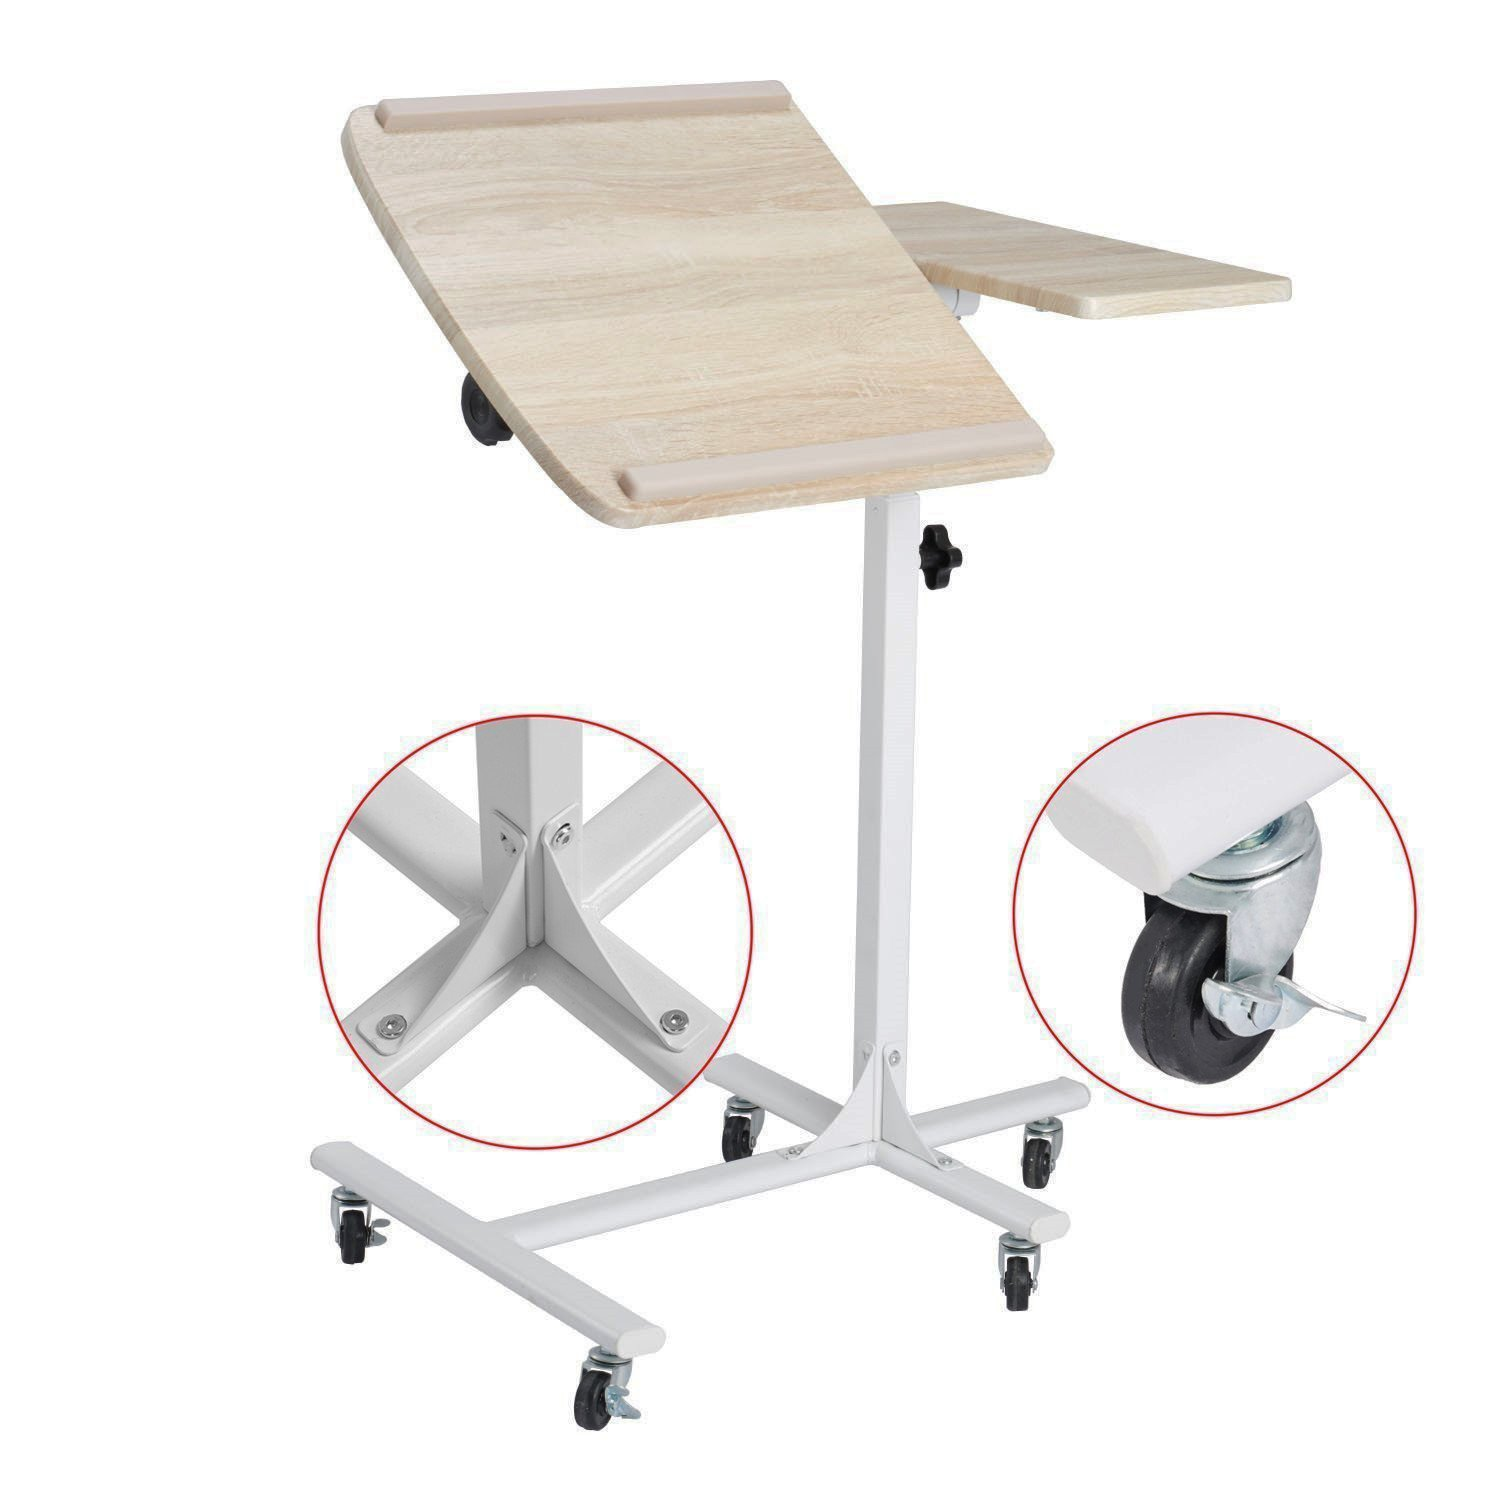 Laptop Table Sofa Bedside Table Overbed Table 5 Adjustable Height Space Saving Movable Sturdy Notebook Computer Stand Desk with Wheels